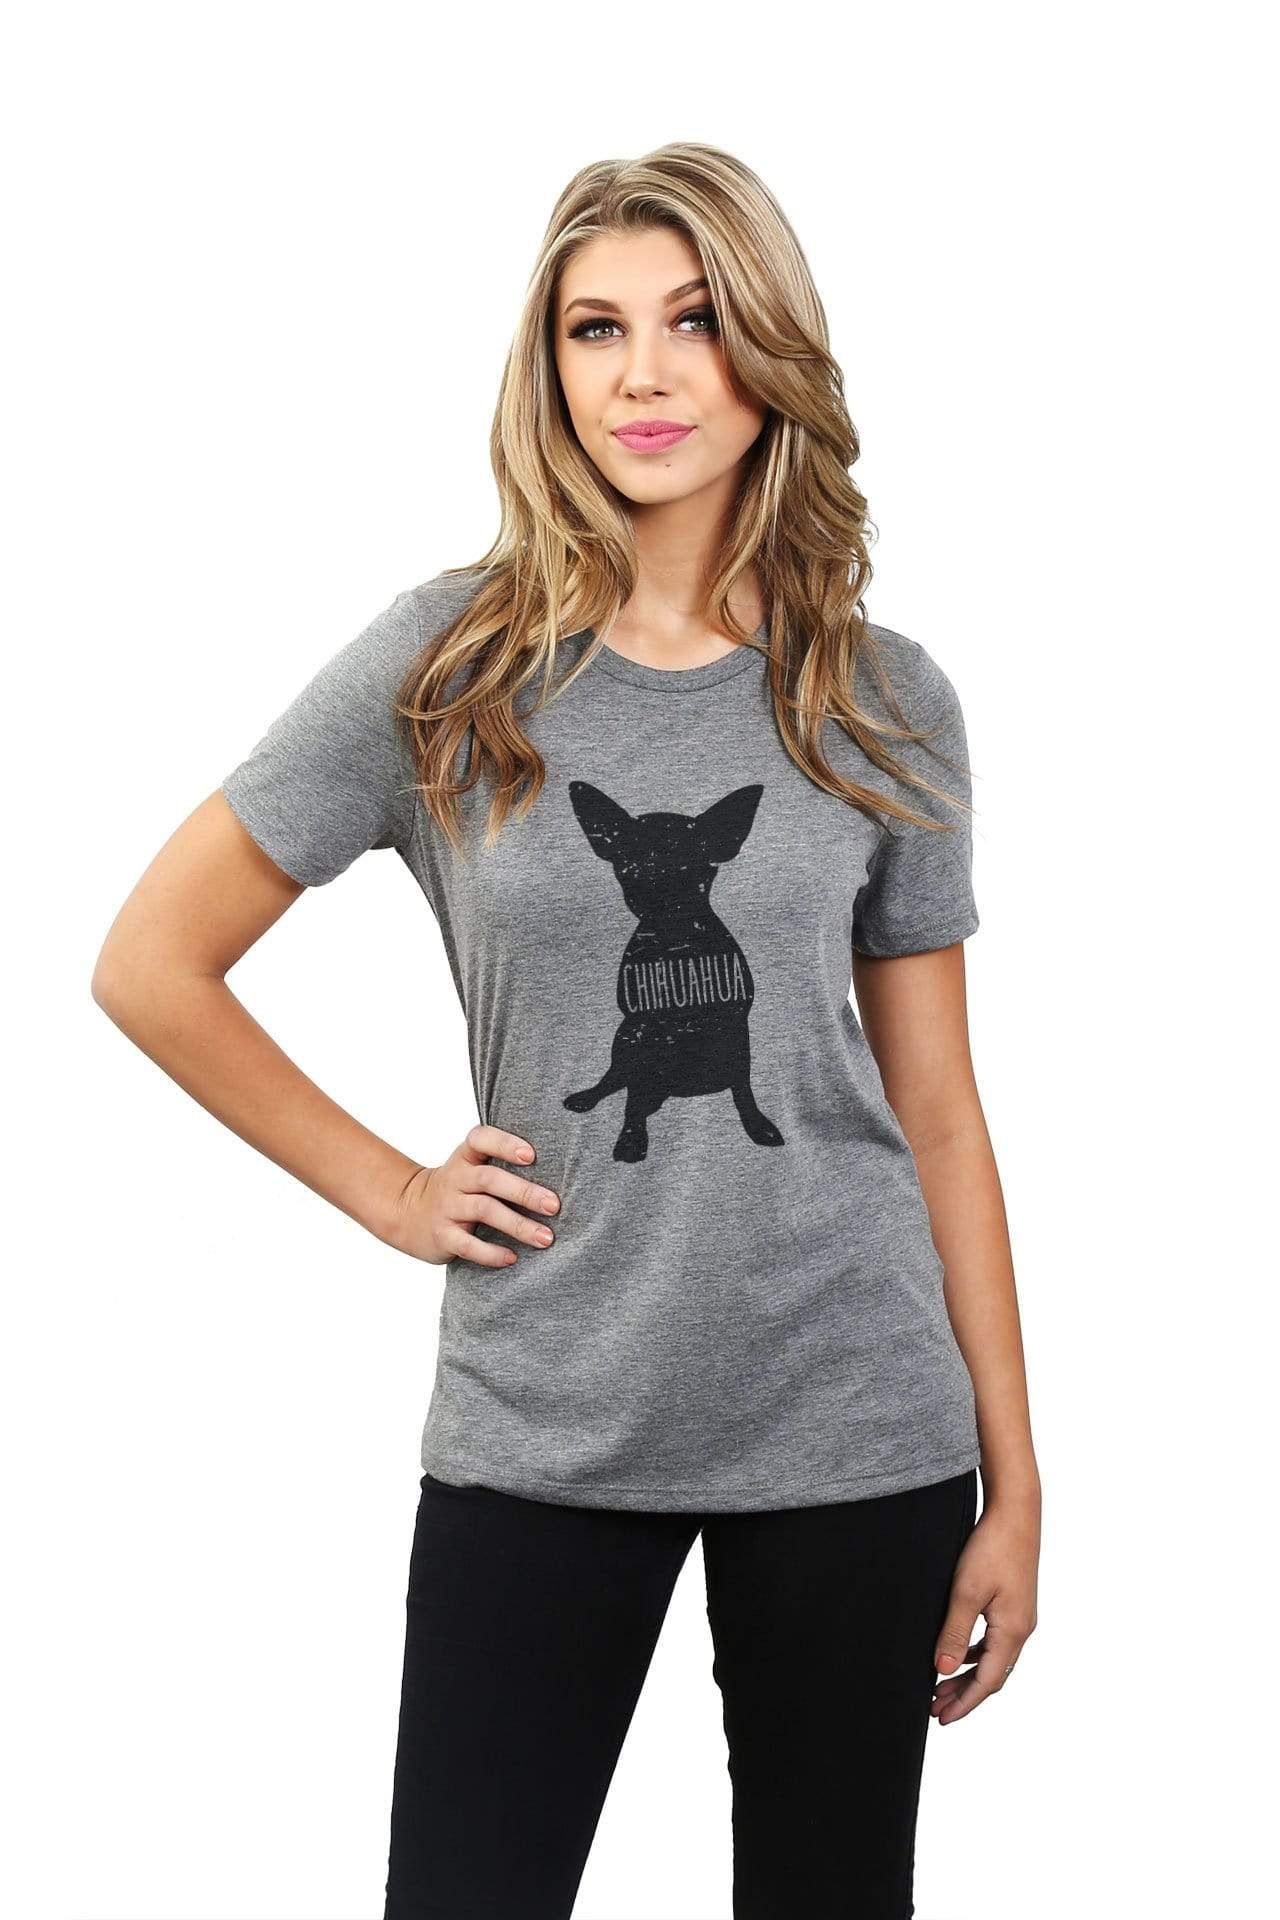 Chihuahua Dog Silhouette Graphic Women's Heather Grey Relaxed Crew T-Shirt Tee Top